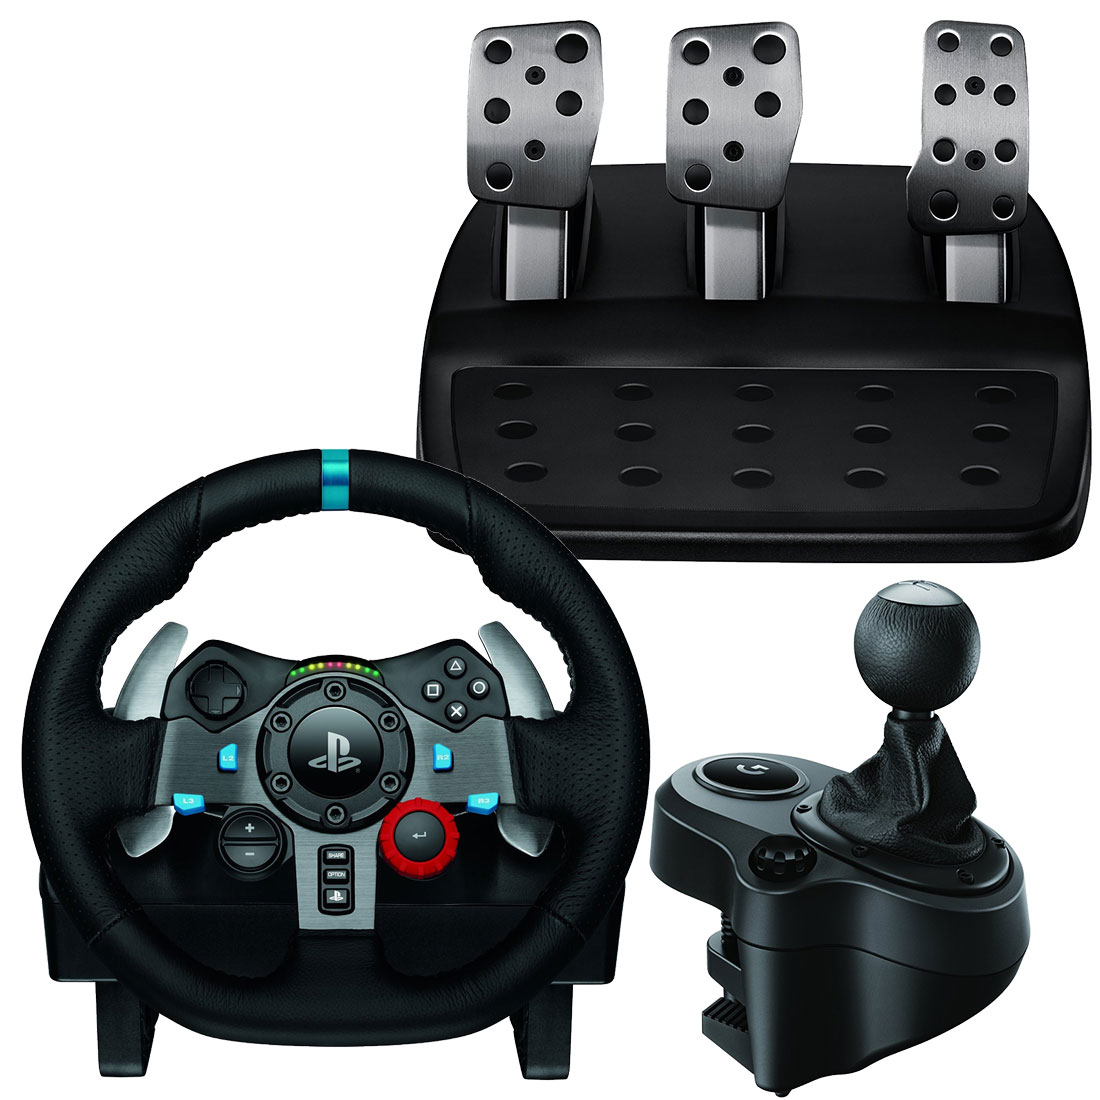 6f4fde5b4ef G29 racing wheel & pedals, gear shifter